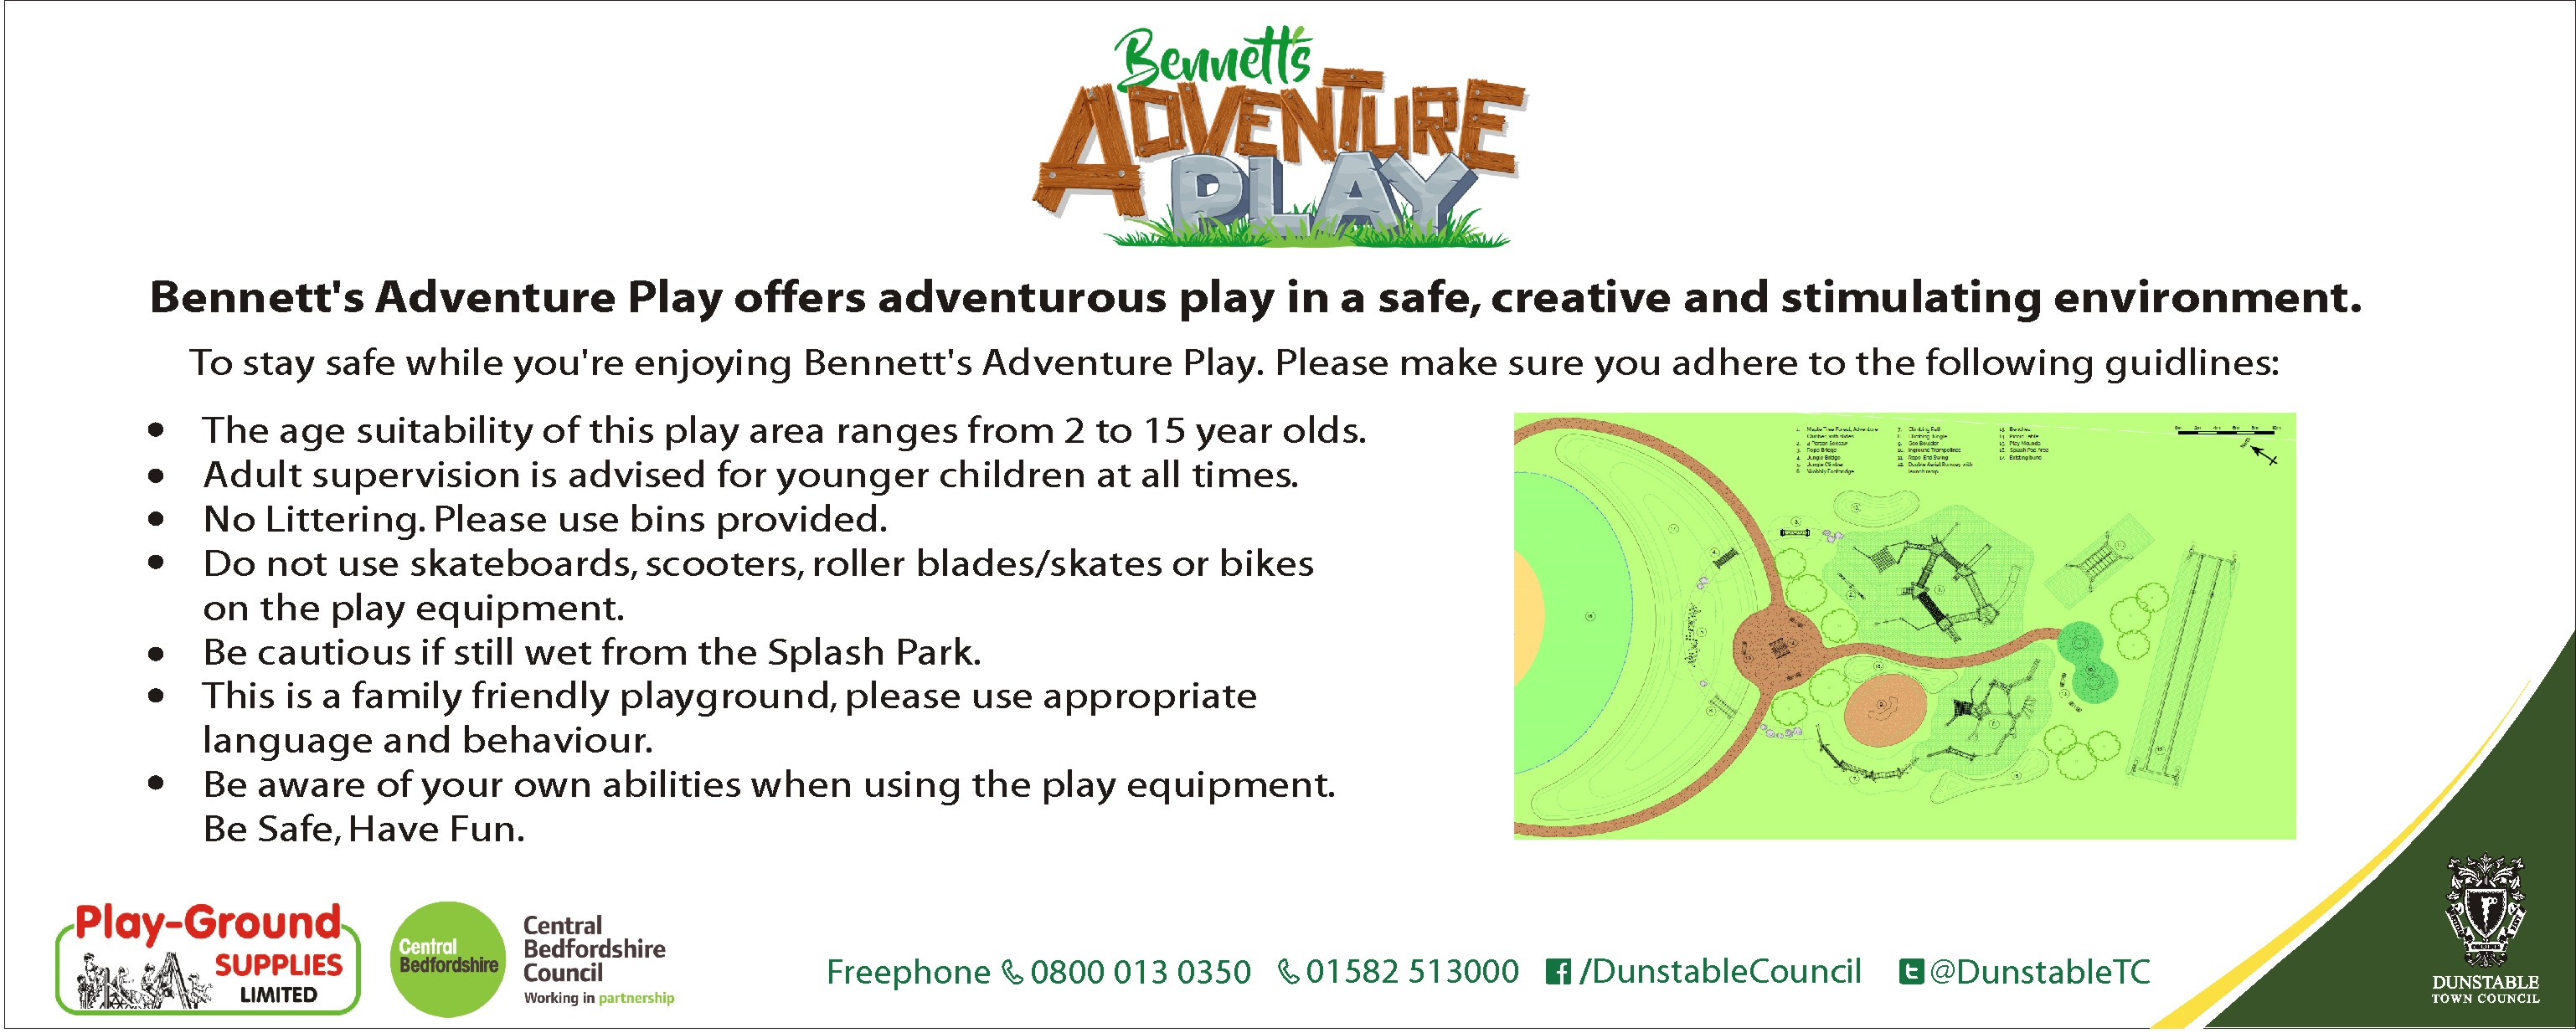 Adventure Play Guidelines